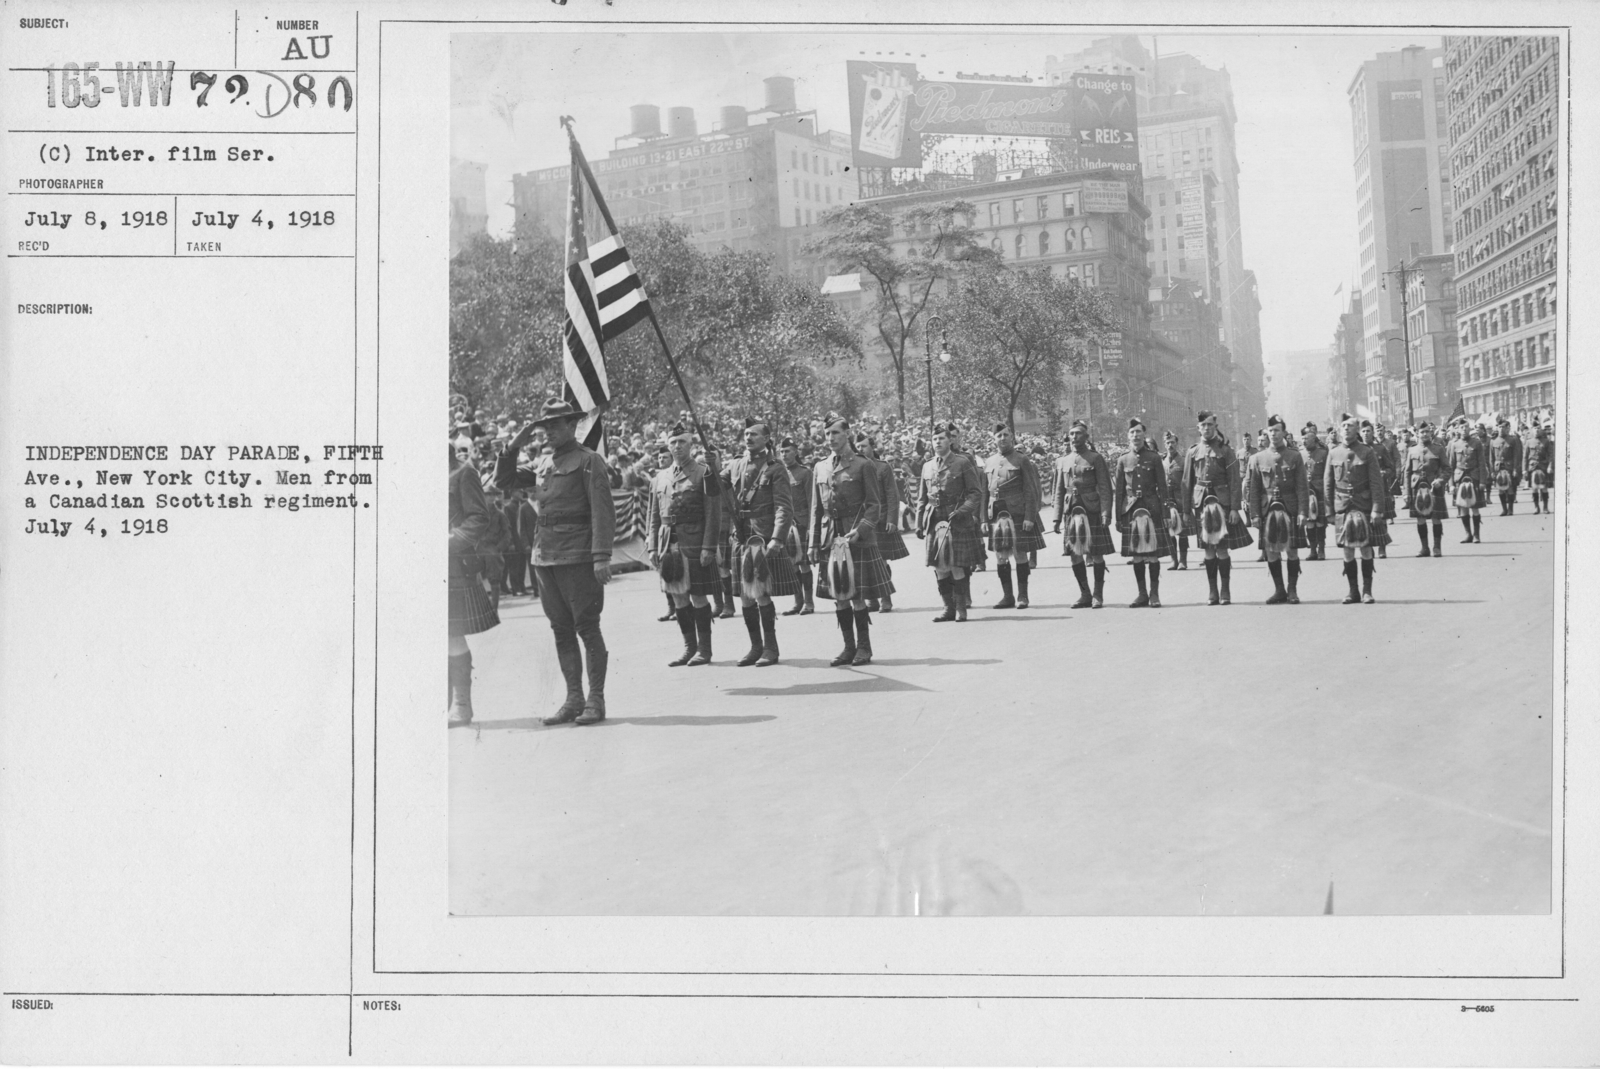 Ceremonies - Independence Day, 1918 - Independence Day Parade, Fifth Ave., New York City. Men from a Canadian Scottish regiment. July 4, 1918